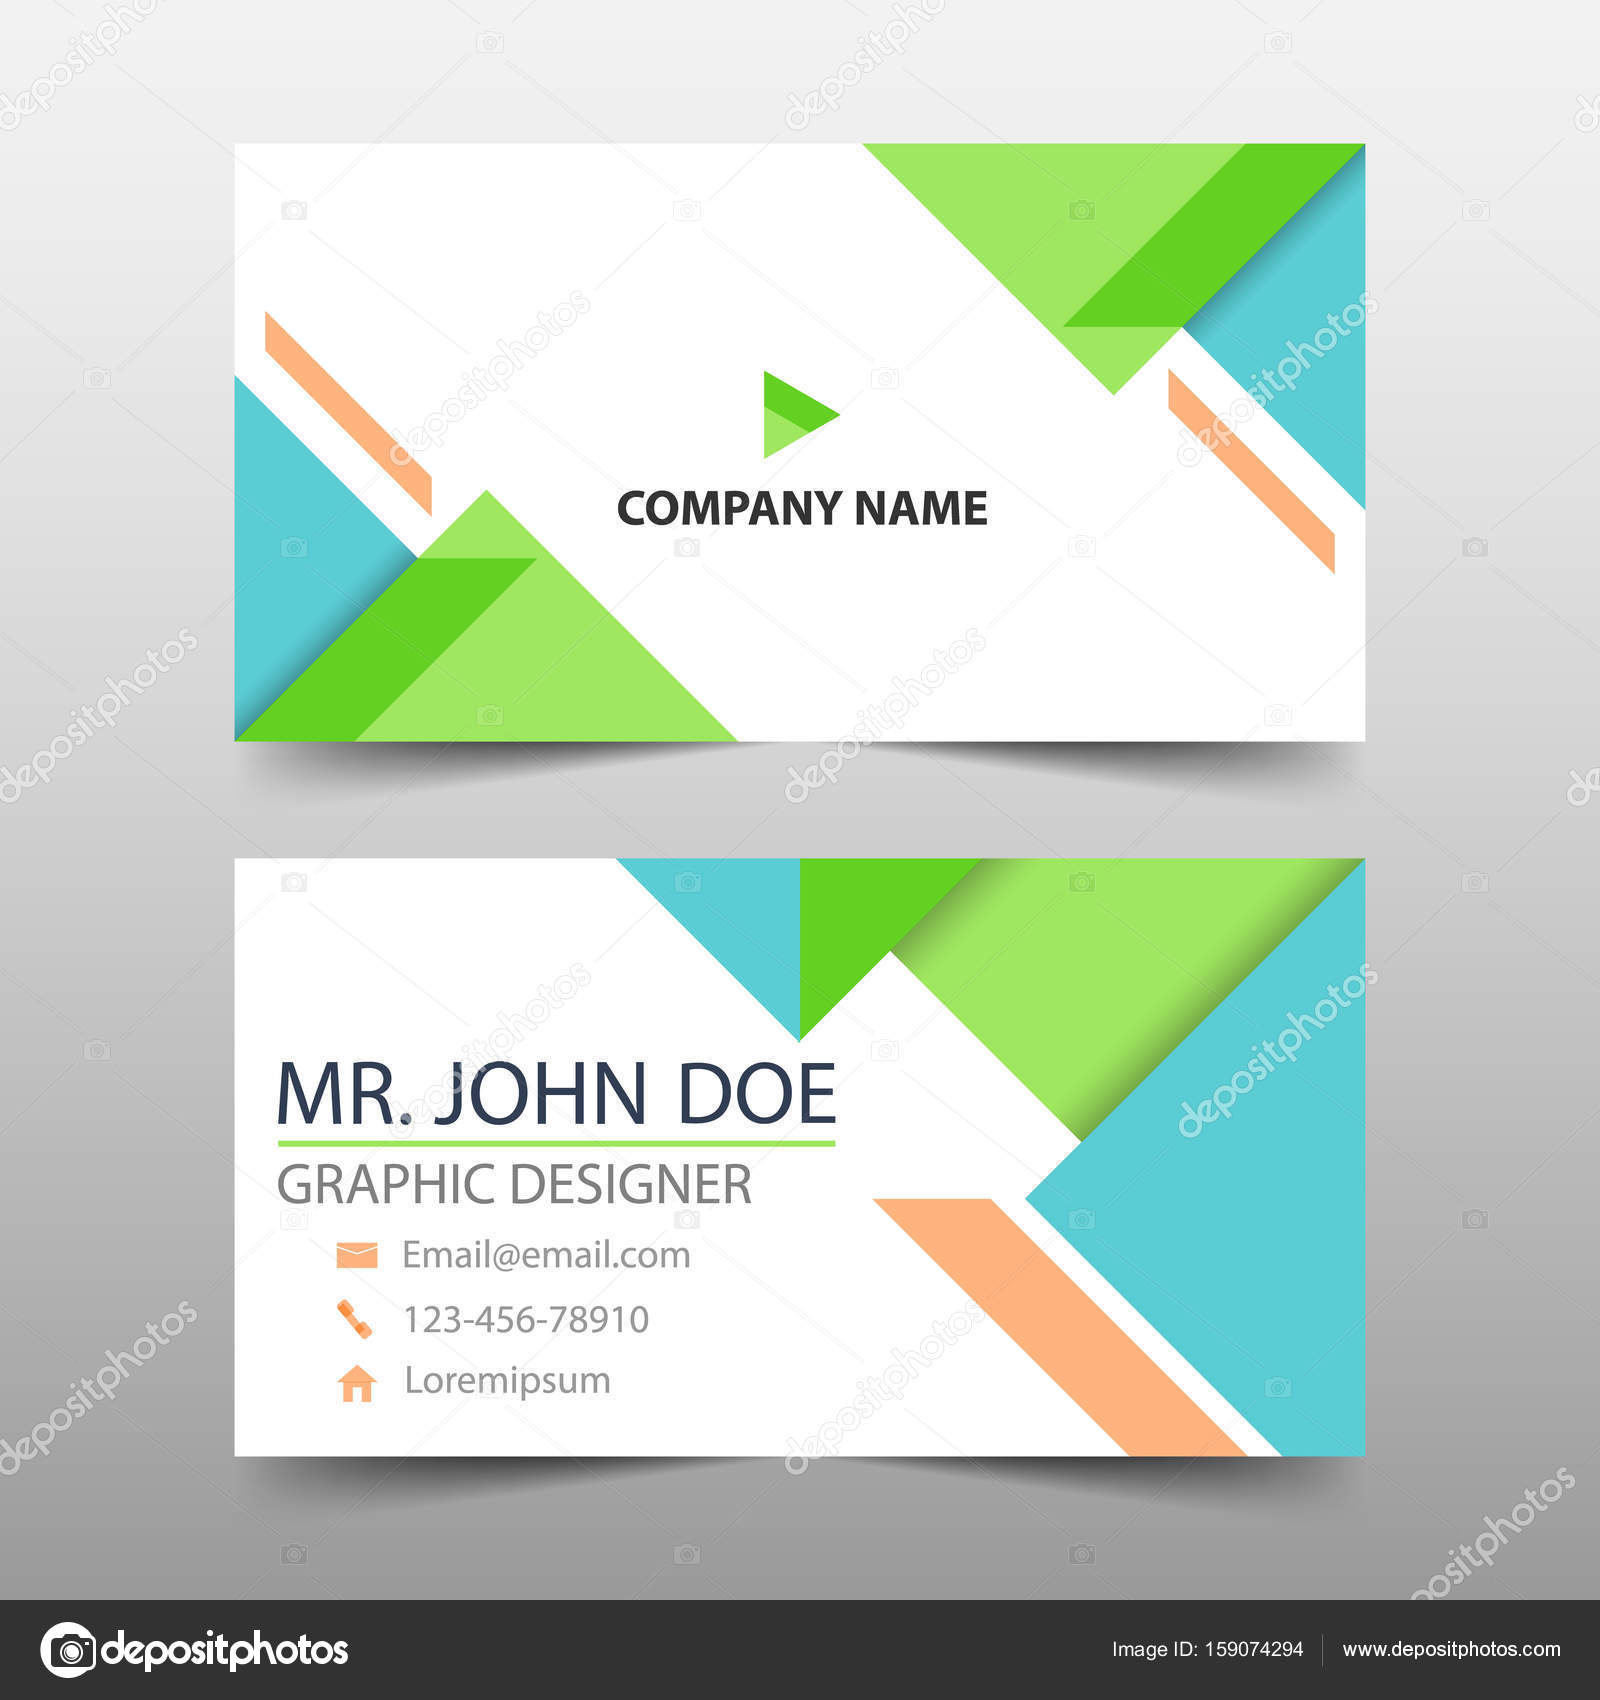 Green corporate business card name card template horizontal simple green corporate business card name card template horizontal simple clean layout design template accmission Image collections